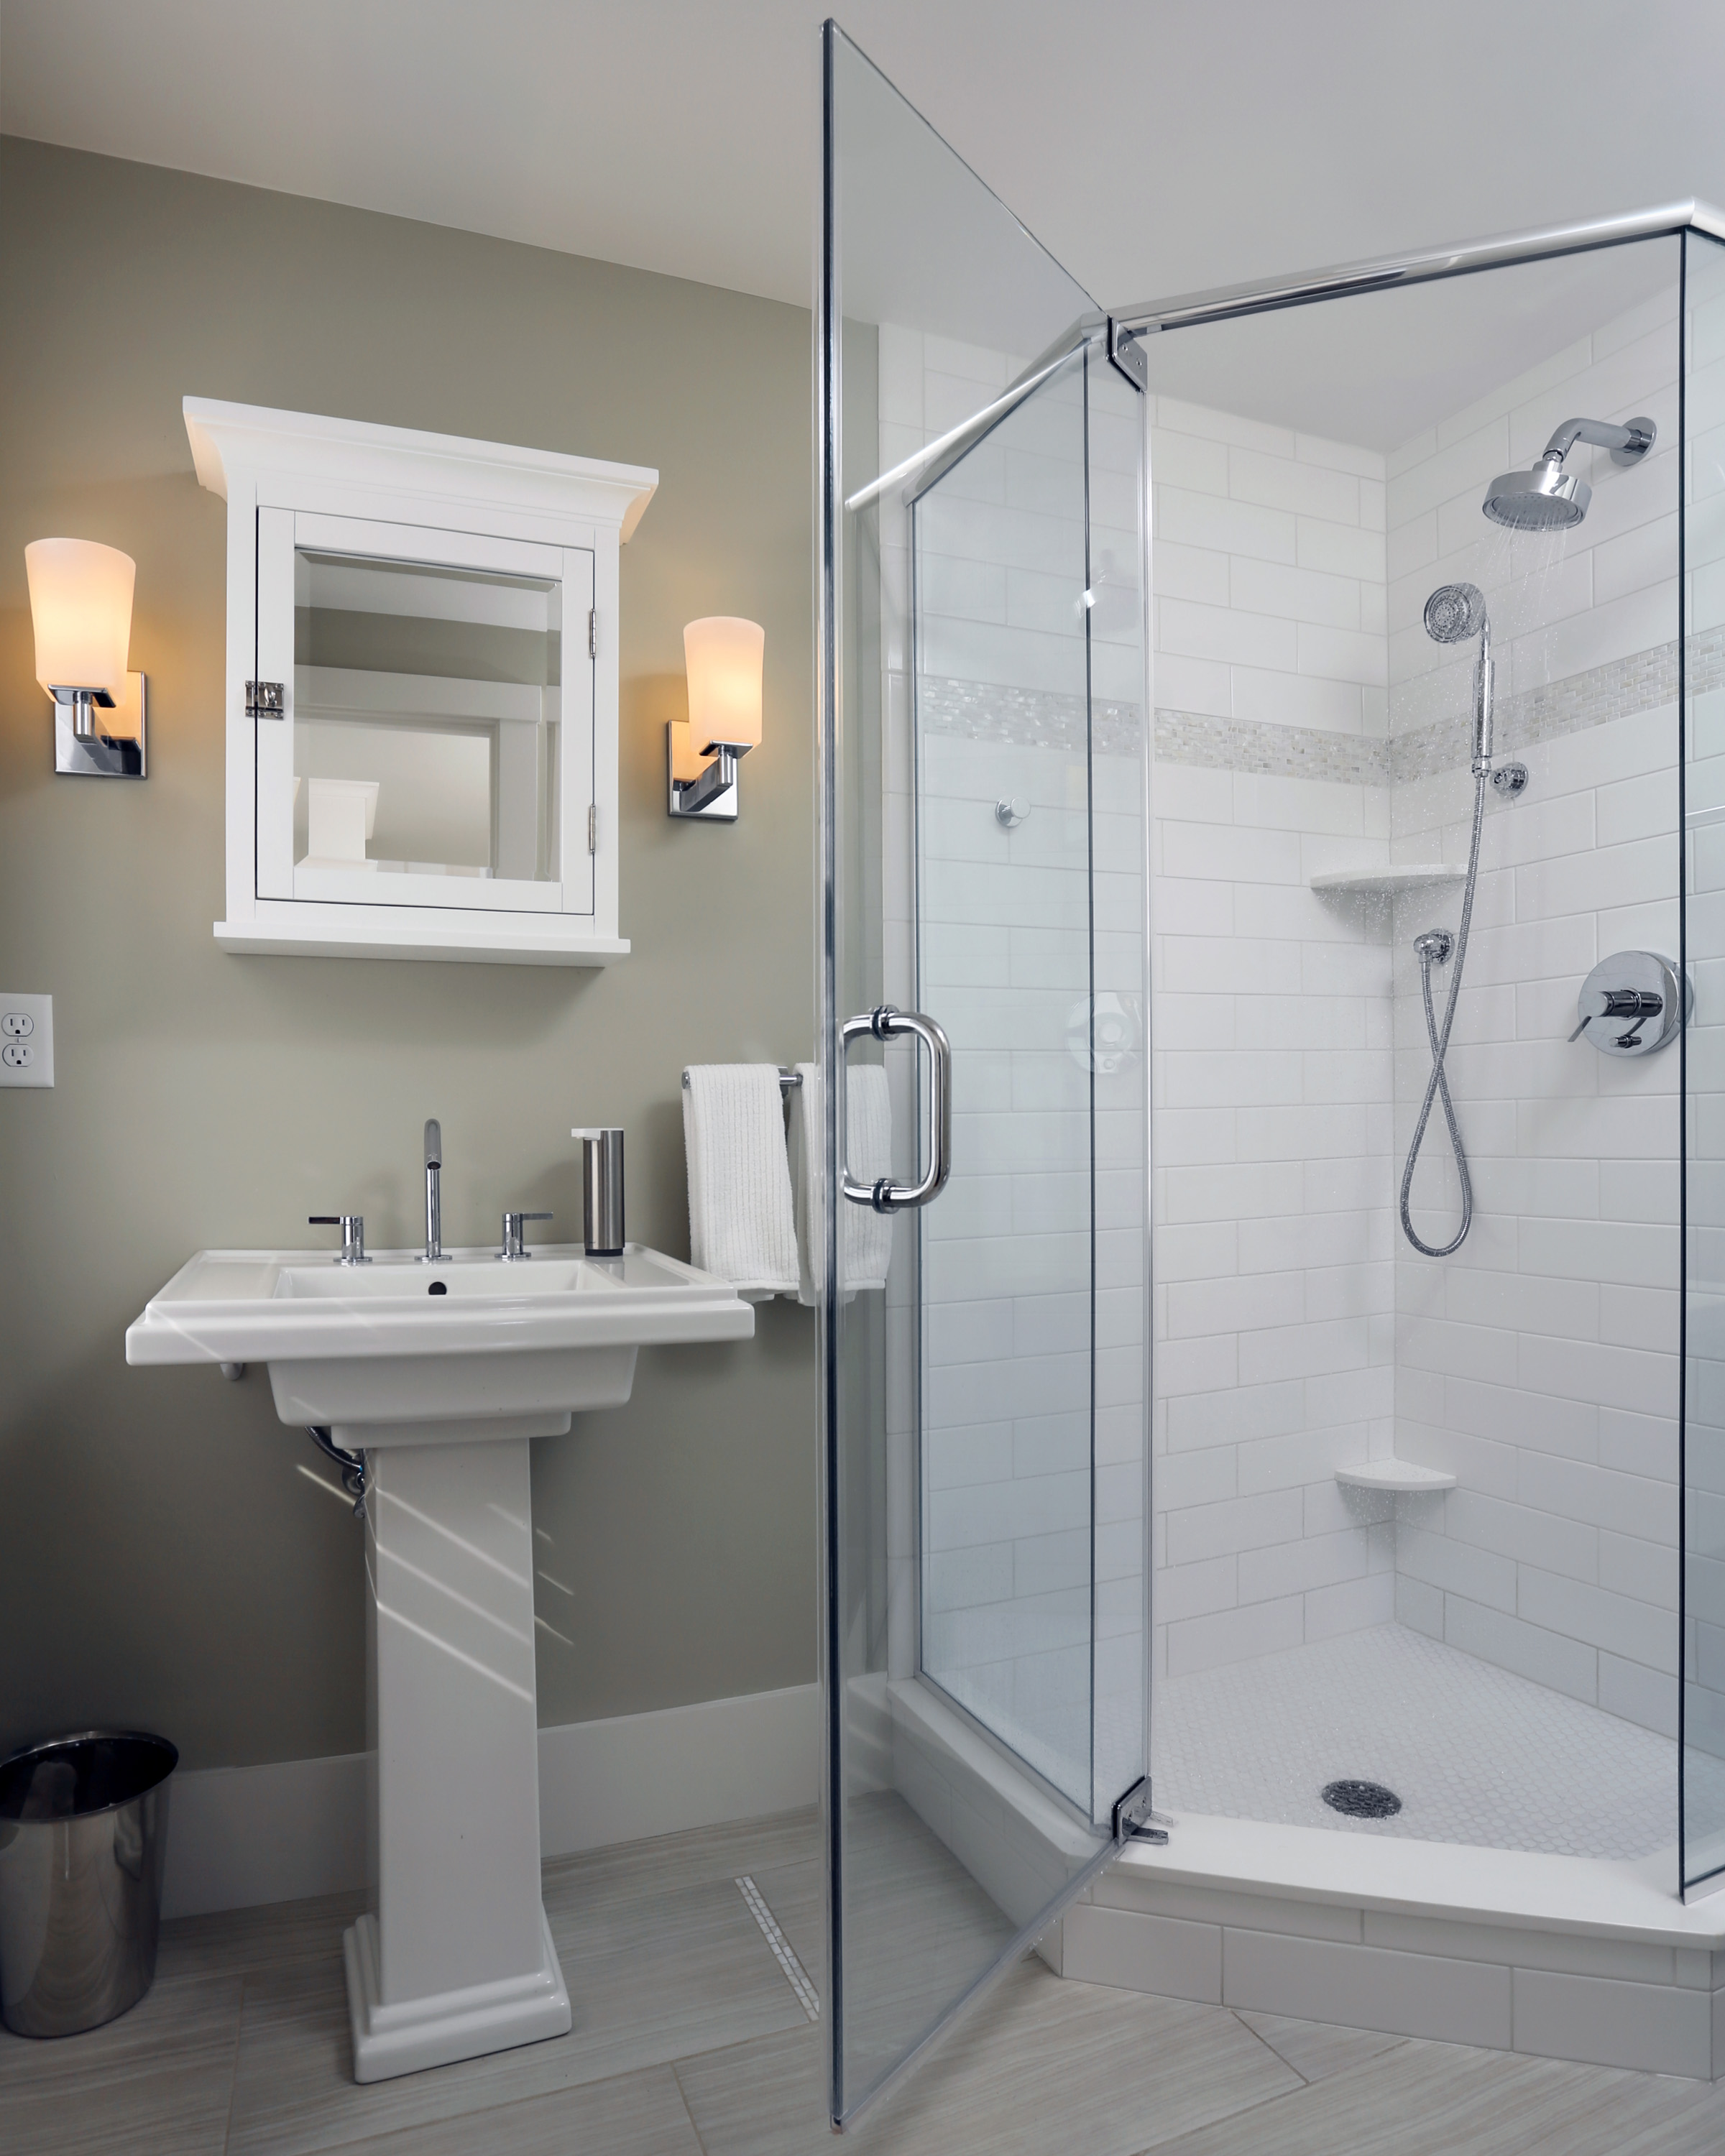 An Emerging Bathroom Trend: Zero Threshold Shower